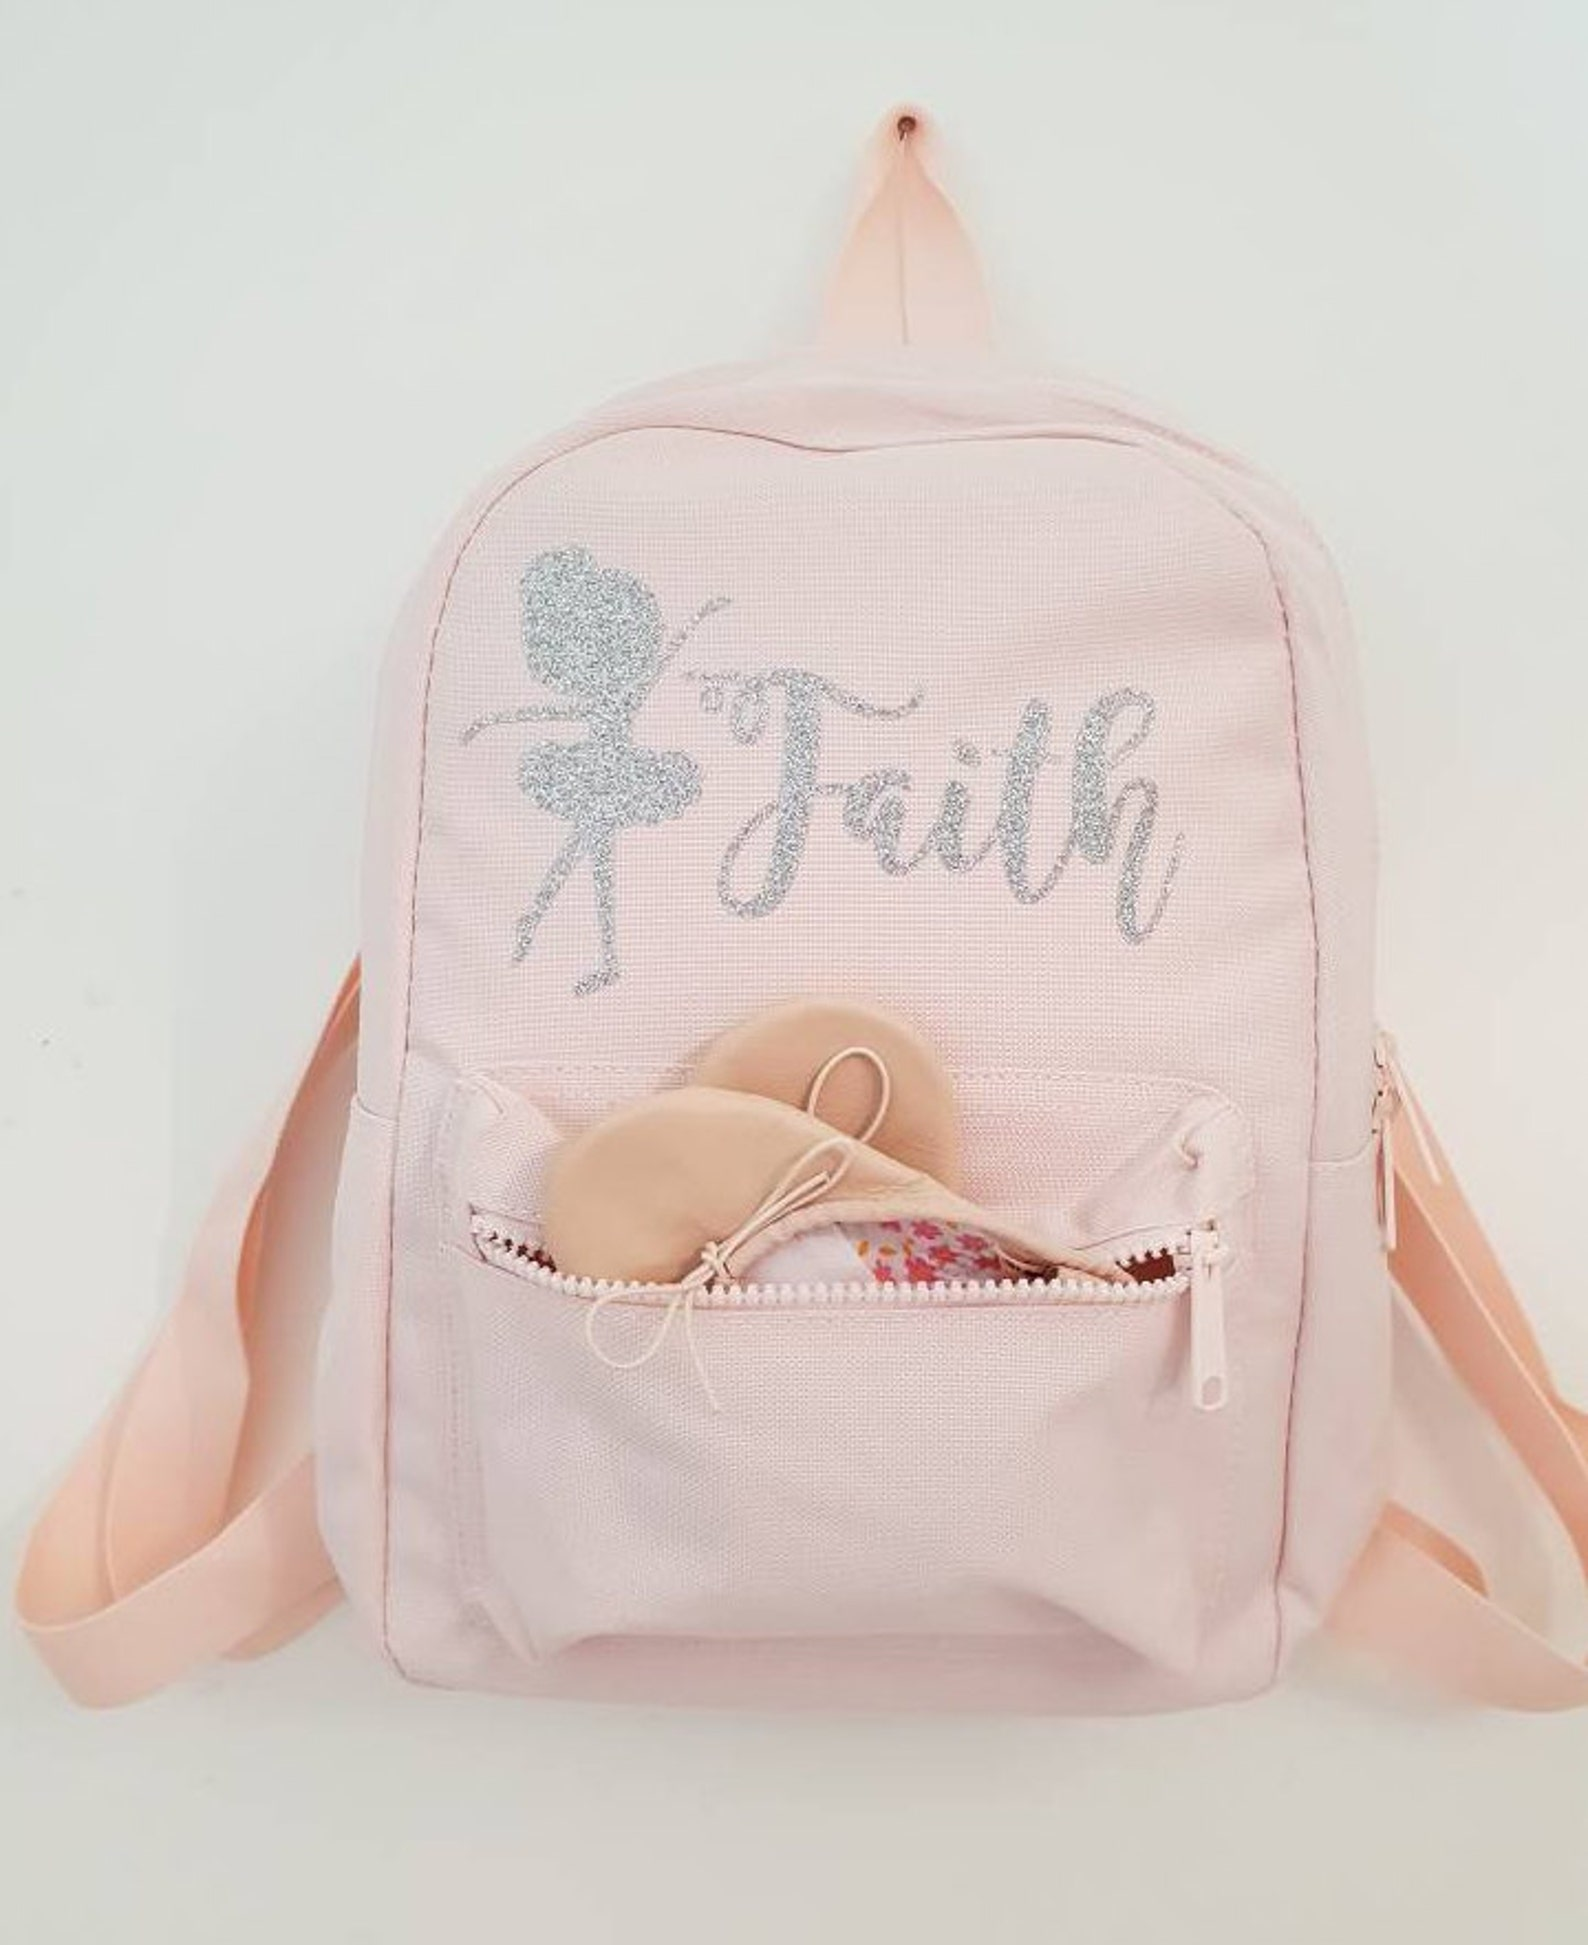 personalised ballet bag girls mini back pack pink dance sack holdall baby light pink ballerina dancer stage costume tap jazz sho